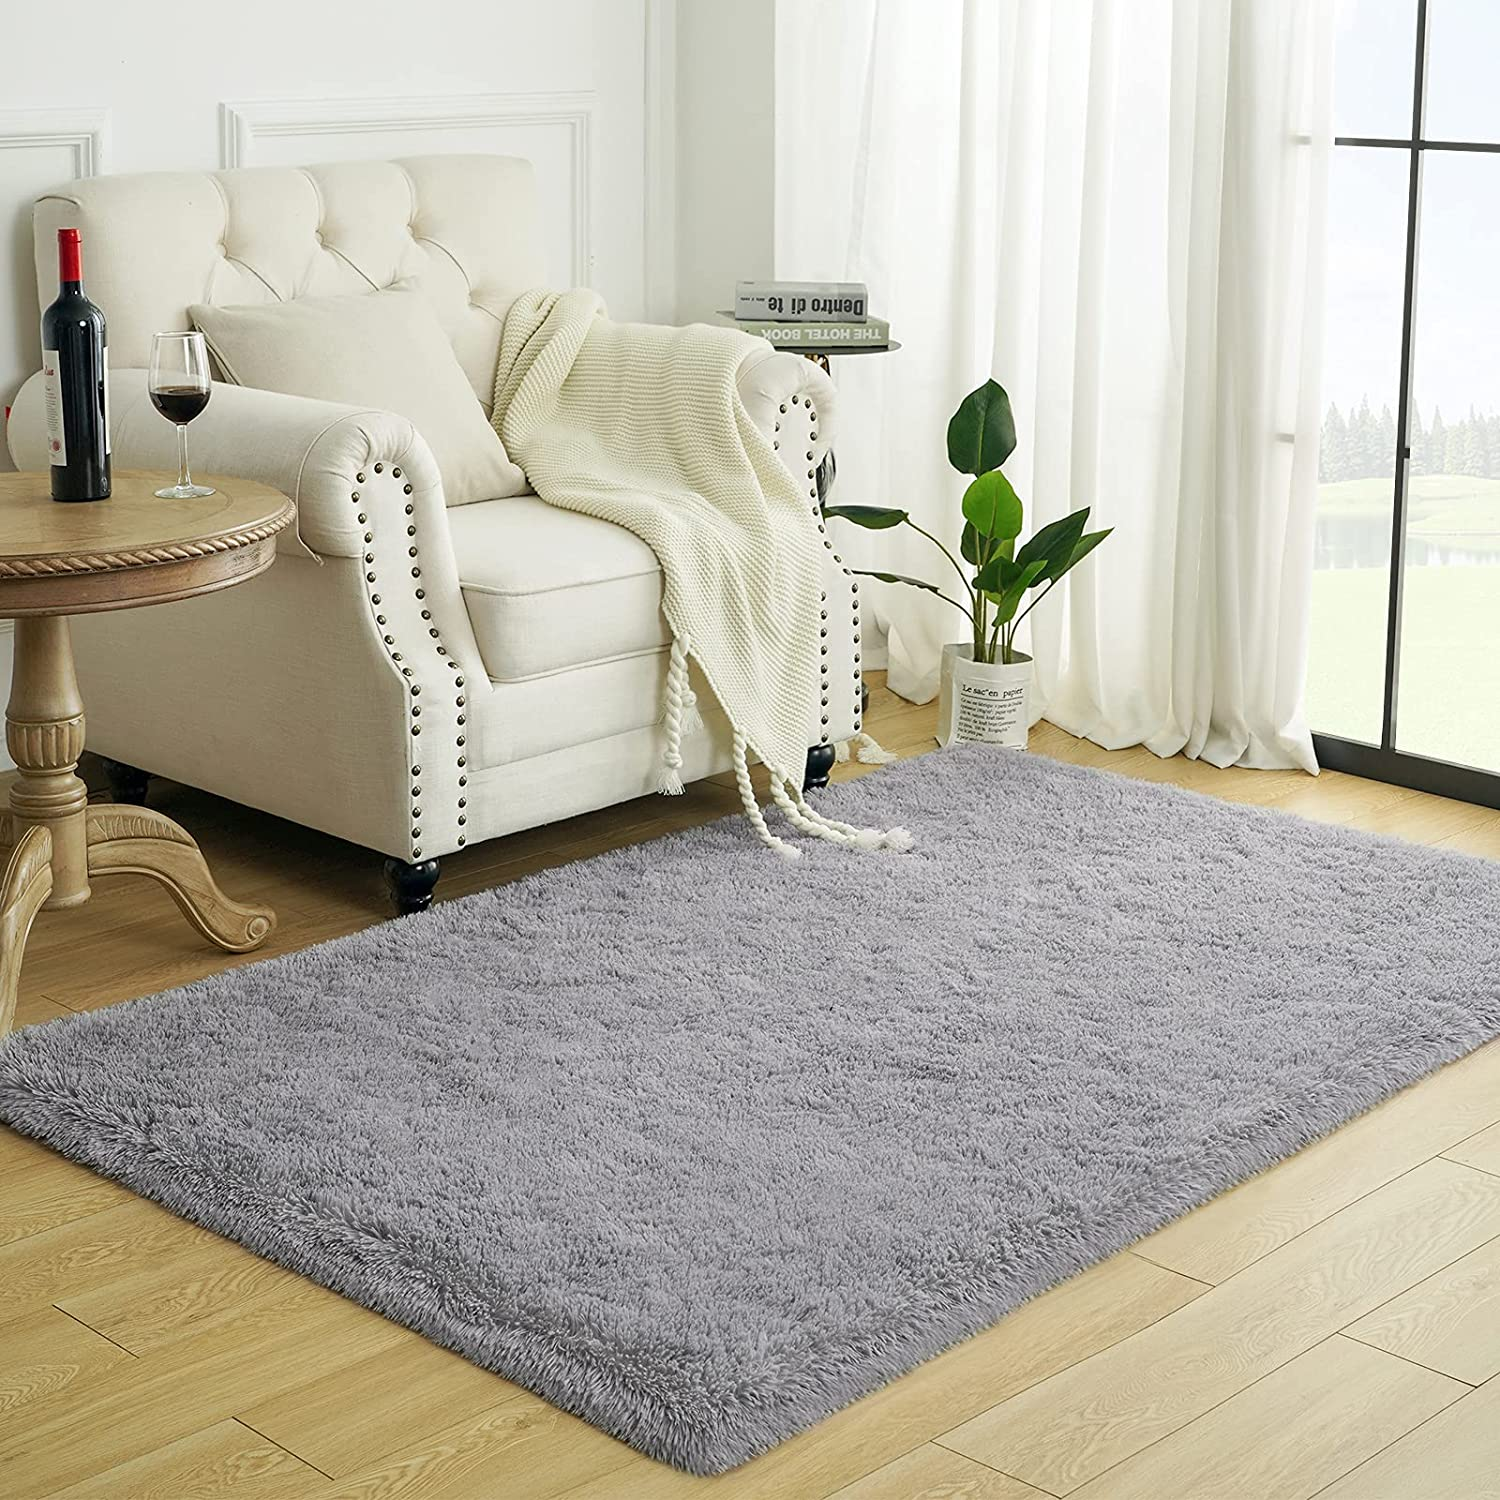 Lascpt Area Rugs for Living Room, Super Fluffy Fuzzy Rug for Bedroom, Grey Furry Shag Rug 4x5.9, Cute Room Decor Carpet for Teen Girls Kids Baby College Dorm Room, Washable Nursery Rug Decorations